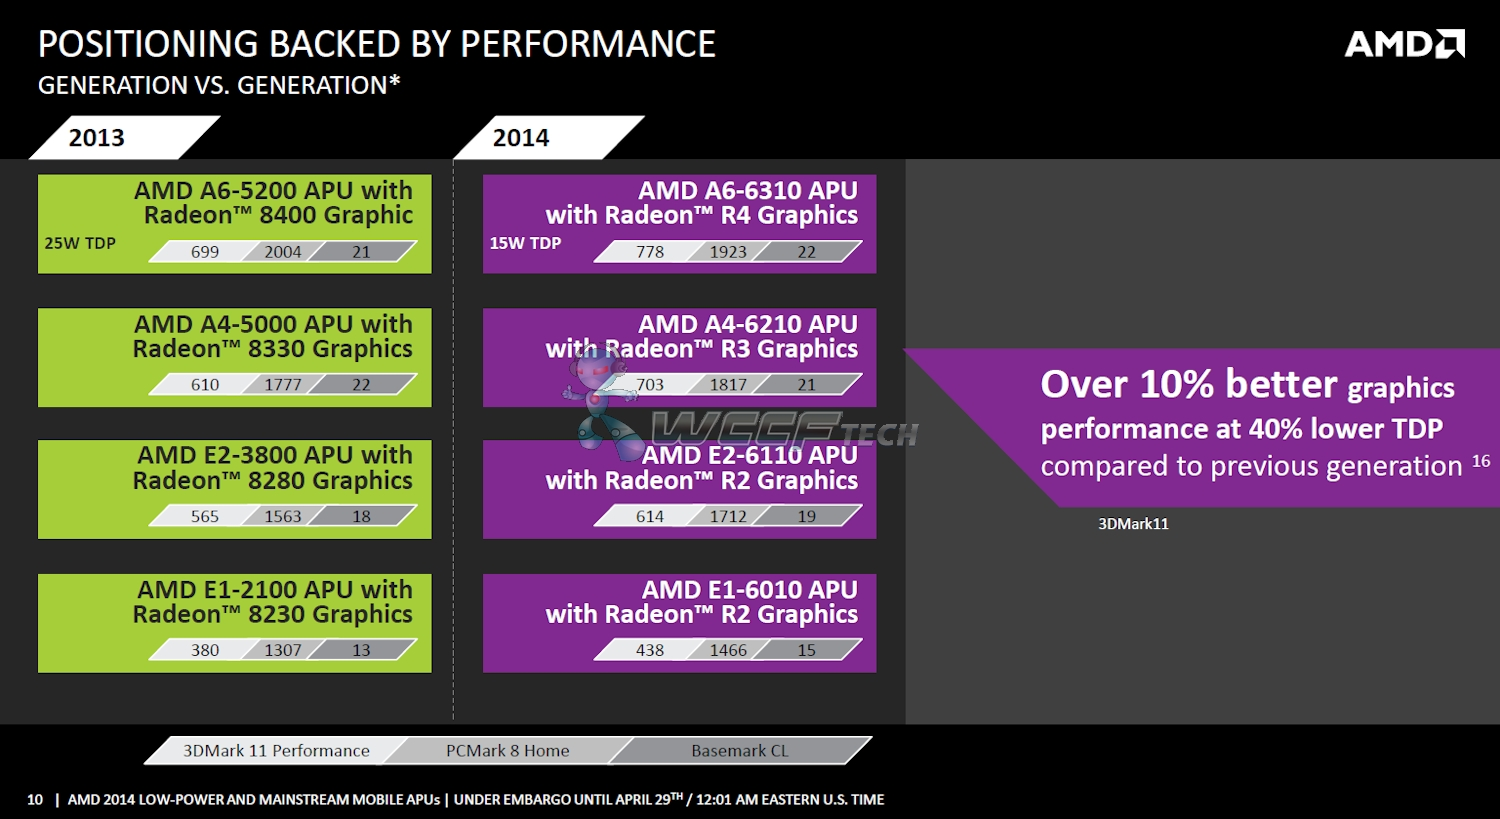 Amd Low Power Mullins And Mainstream Beema Apu Detailed Powered With Puma X86 And Gcn Cores Launches Tomorrow